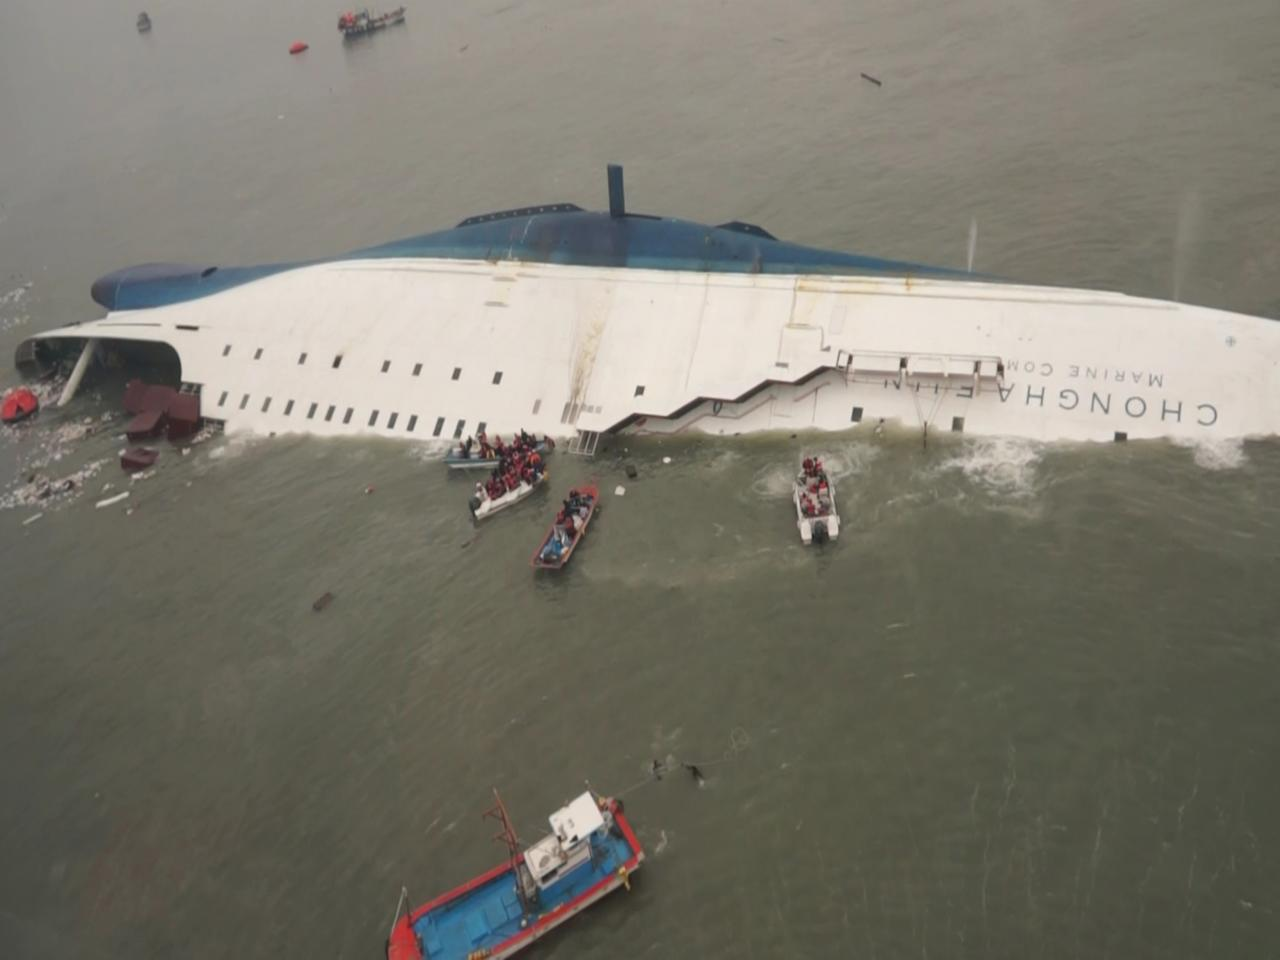 "South Korean ferry ""Sewol"" is seen sinking in the sea off Jindo April 16, 2014, in this picture provided by Korea Coast Guard and released by Yonhap. Almost 300 people were missing after a ferry sank off South Korea on Wednesday, the coastguard said, in what could be the country's biggest peacetime disaster in nearly 20 years. REUTERS/Korea Coast Guard/Yonhap (SOUTH KOREA - Tags: DISASTER) ATTENTION EDITORS - NO SALES. NO ARCHIVES. FOR EDITORIAL USE ONLY. NOT FOR SALE FOR MARKETING OR ADVERTISING CAMPAIGNS. THIS IMAGE HAS BEEN SUPPLIED BY A THIRD PARTY. IT IS DISTRIBUTED, EXACTLY AS RECEIVED BY REUTERS, AS A SERVICE TO CLIENTS. SOUTH KOREA OUT. NO COMMERCIAL OR EDITORIAL SALES IN SOUTH KOREA"